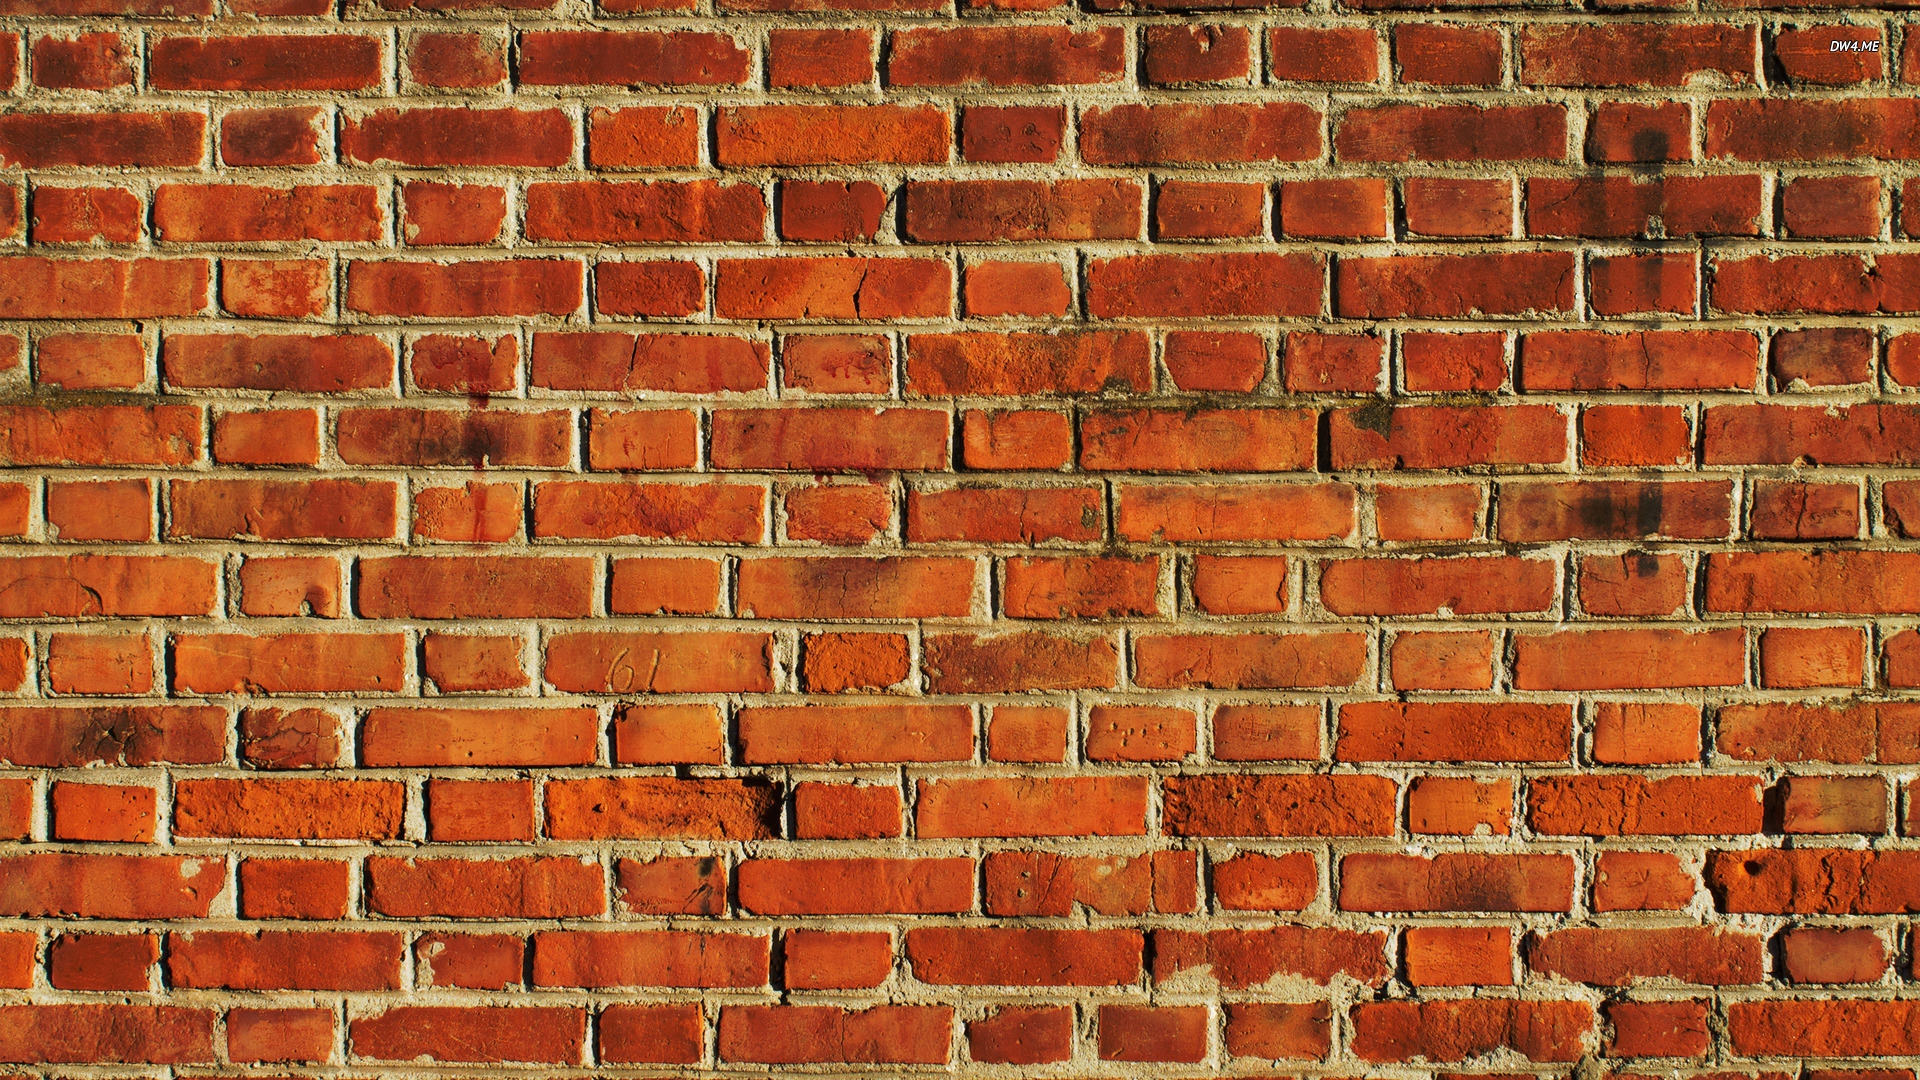 Top Brick Wall Design In Brick Wall Wallpaper 2560x1600 More